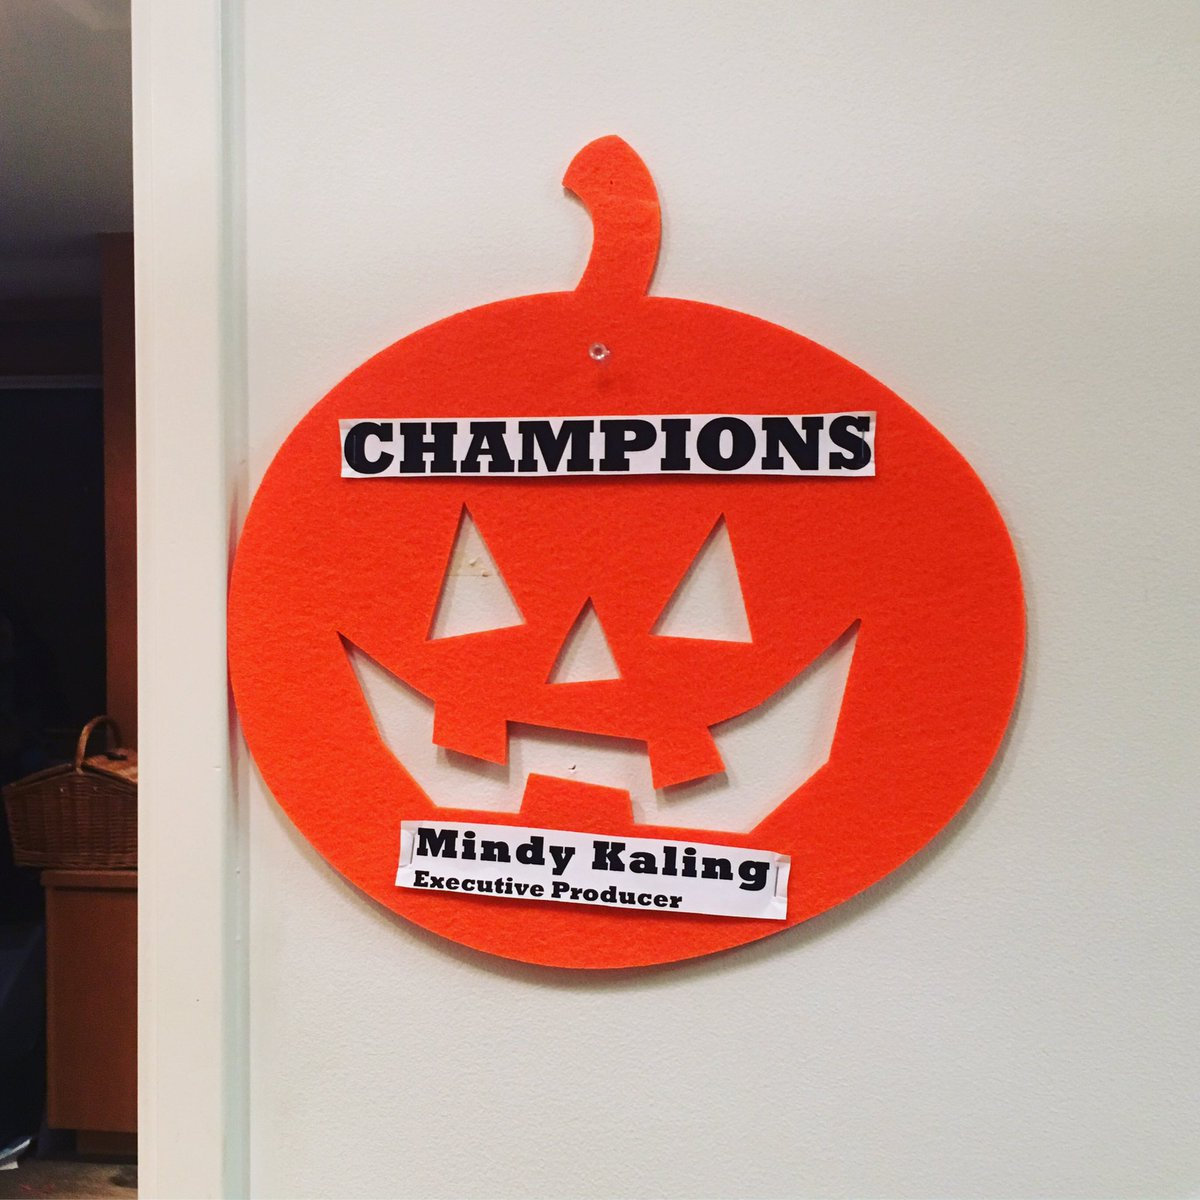 I dunno, this show seems too scary for primetime. #champions